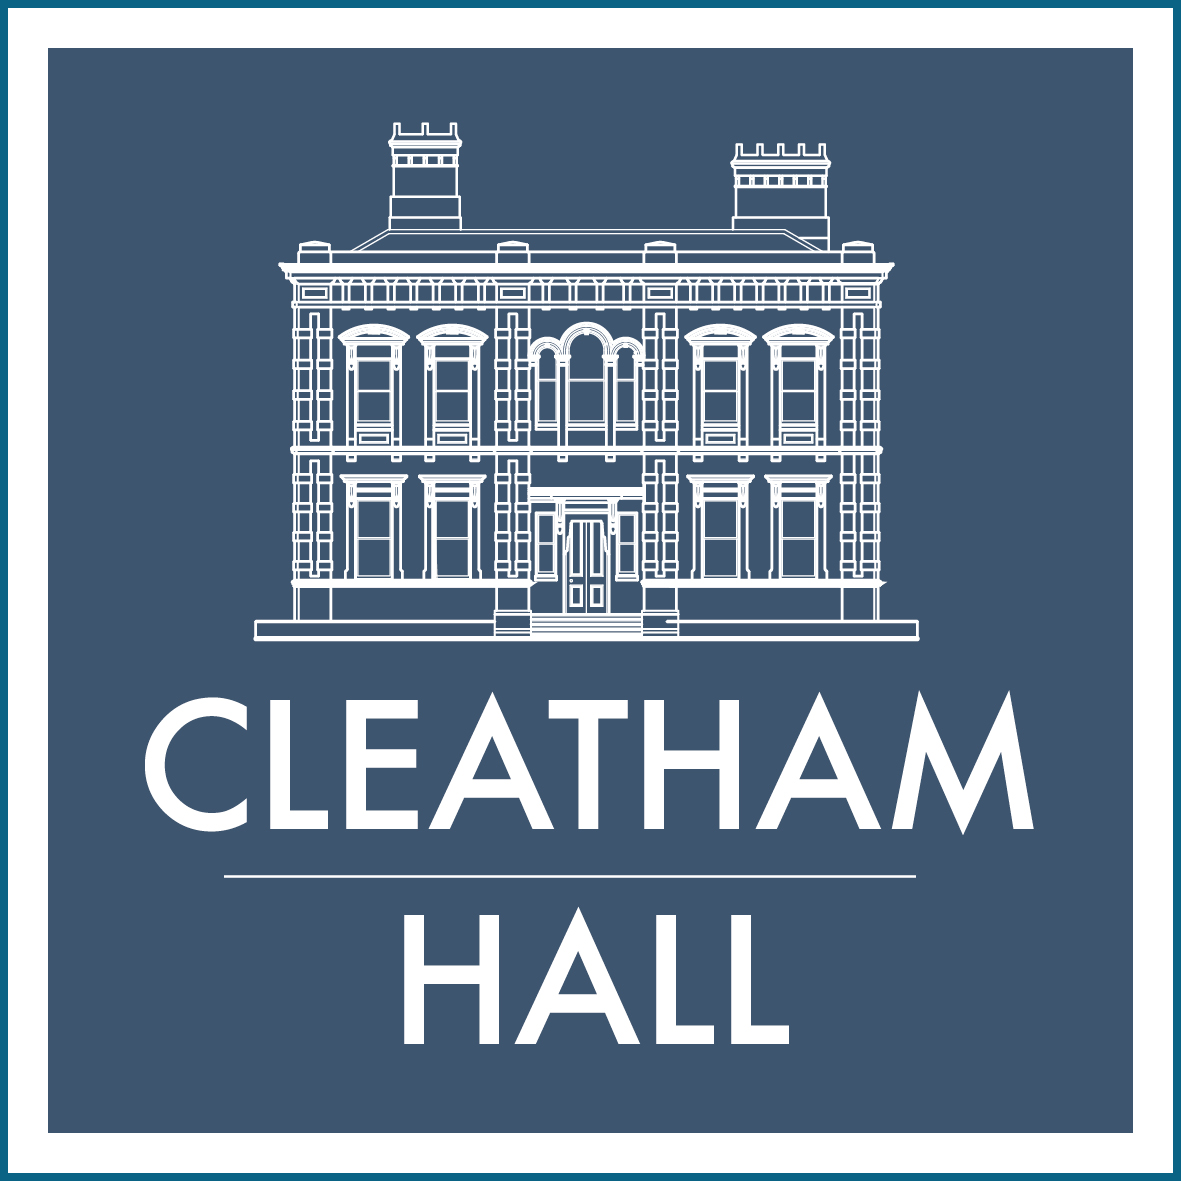 Cleatham Hall